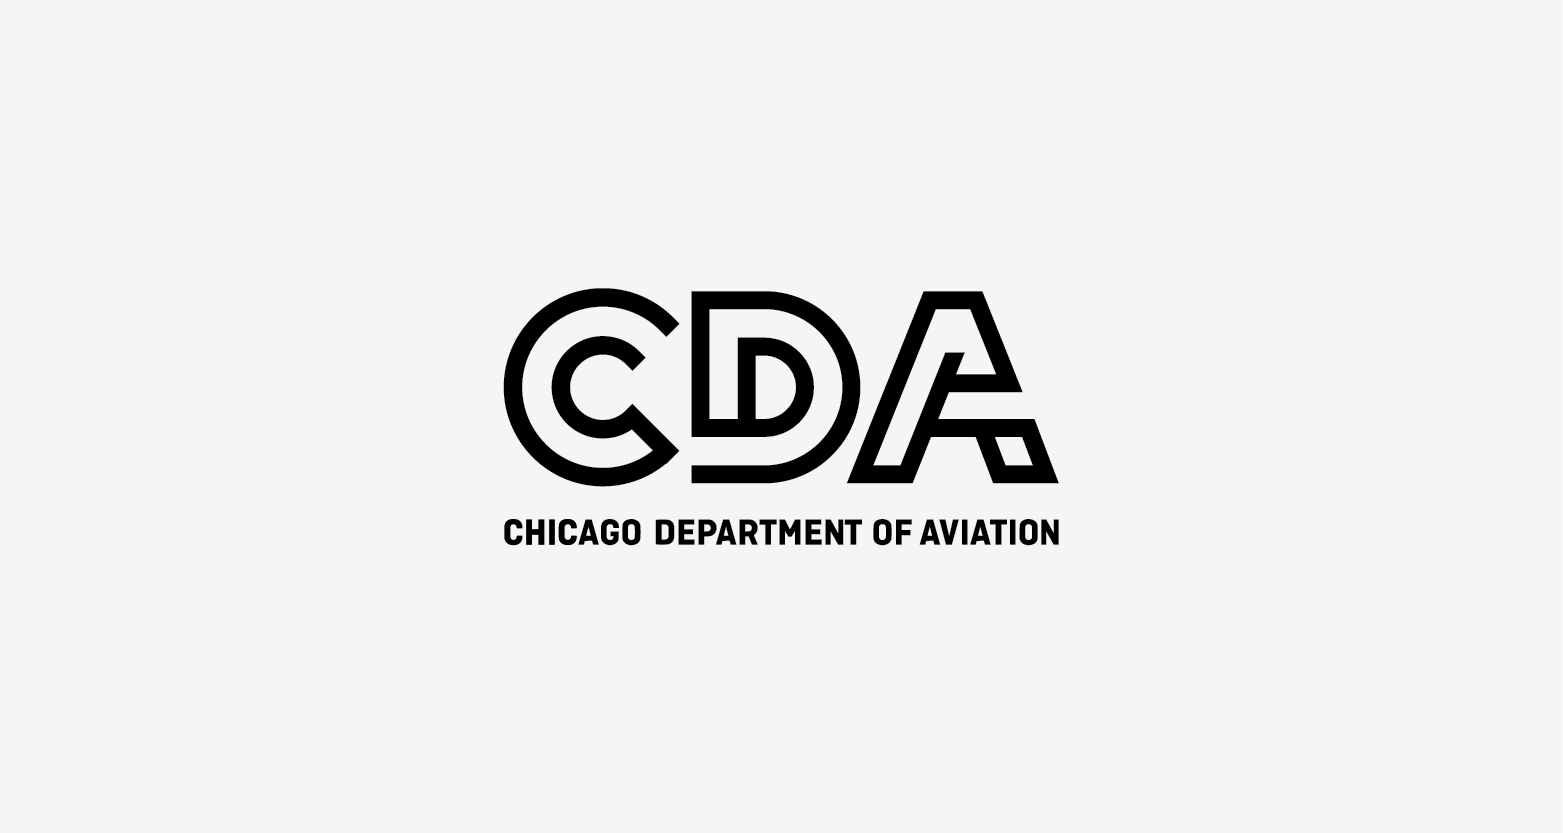 Chicago Department of Aviation – City Department